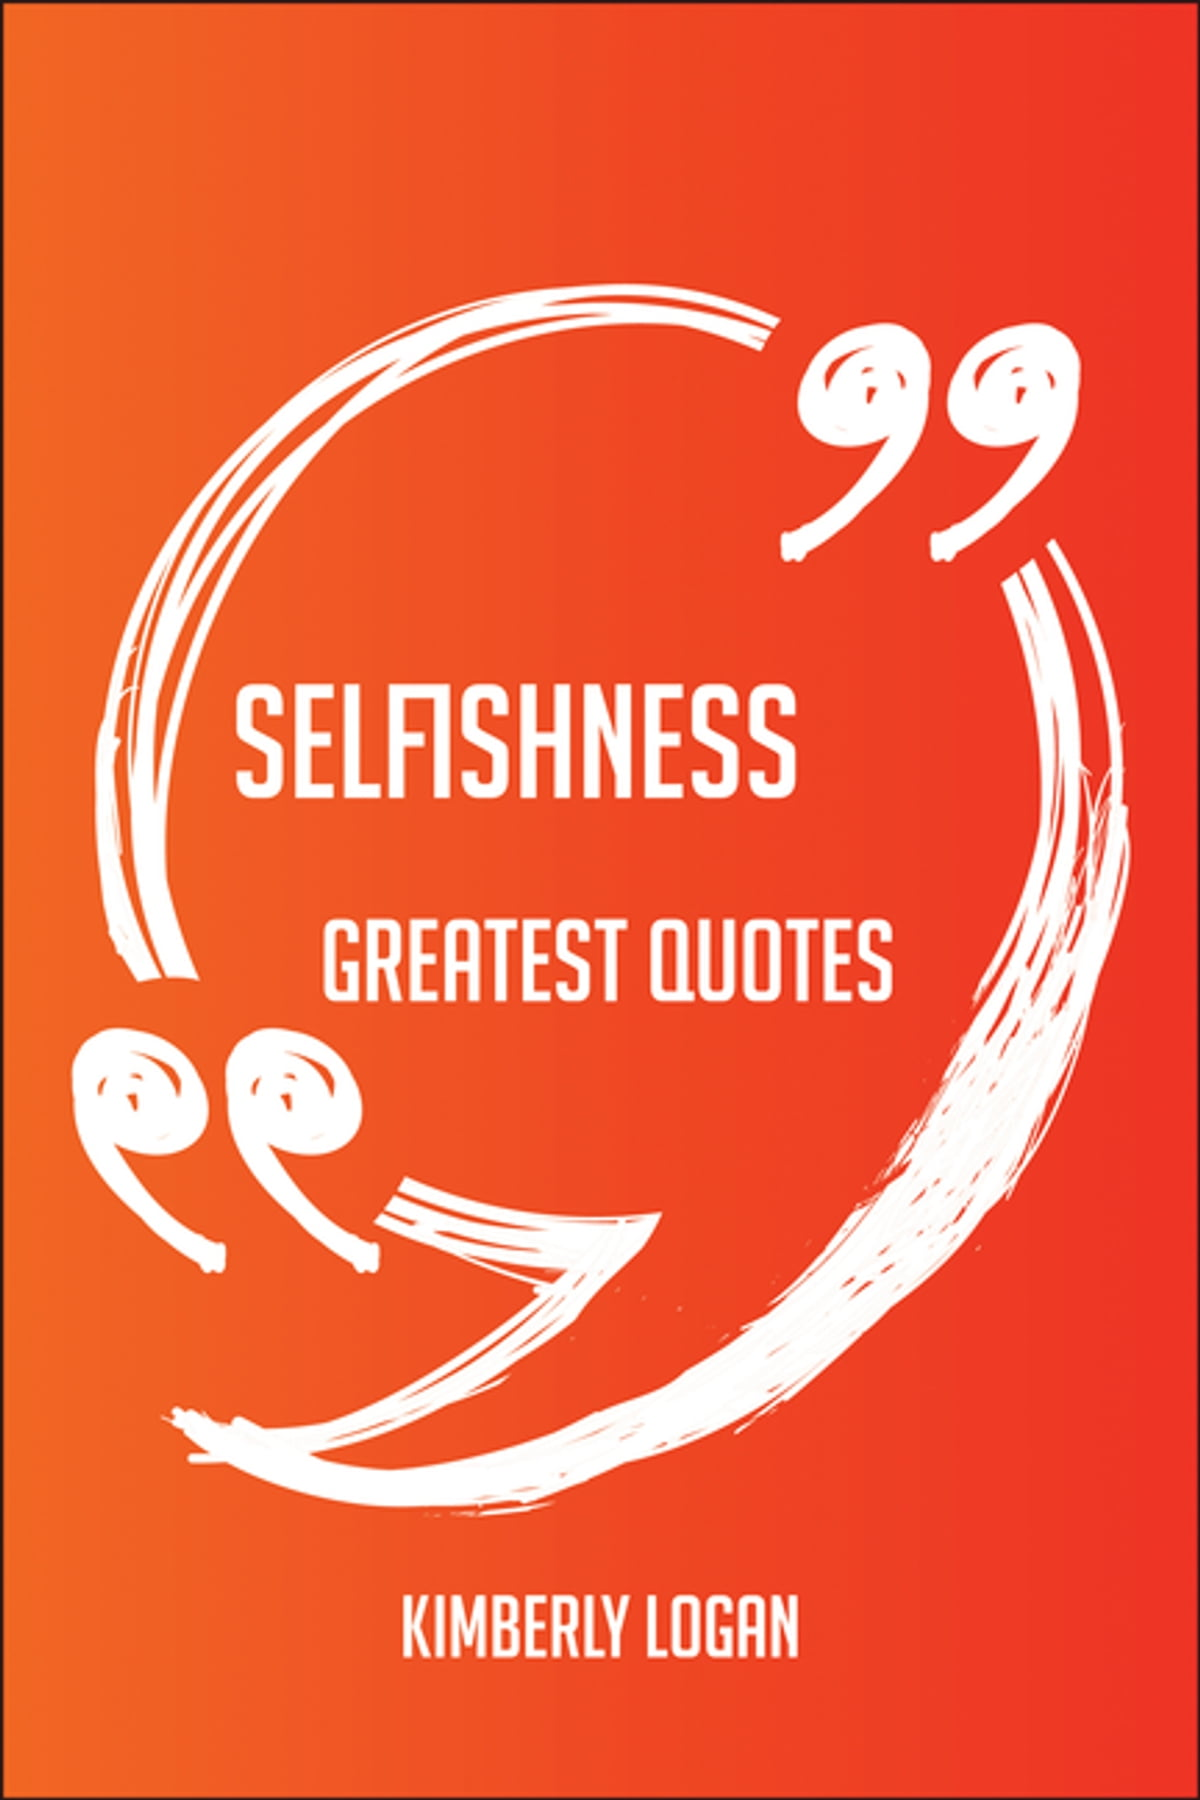 Selfishness Greatest Quotes - Quick, Short, Medium Or Long Quotes. Find The  Perfect Selfishness Quotations For All Occasions - Spicing Up Letters, ...